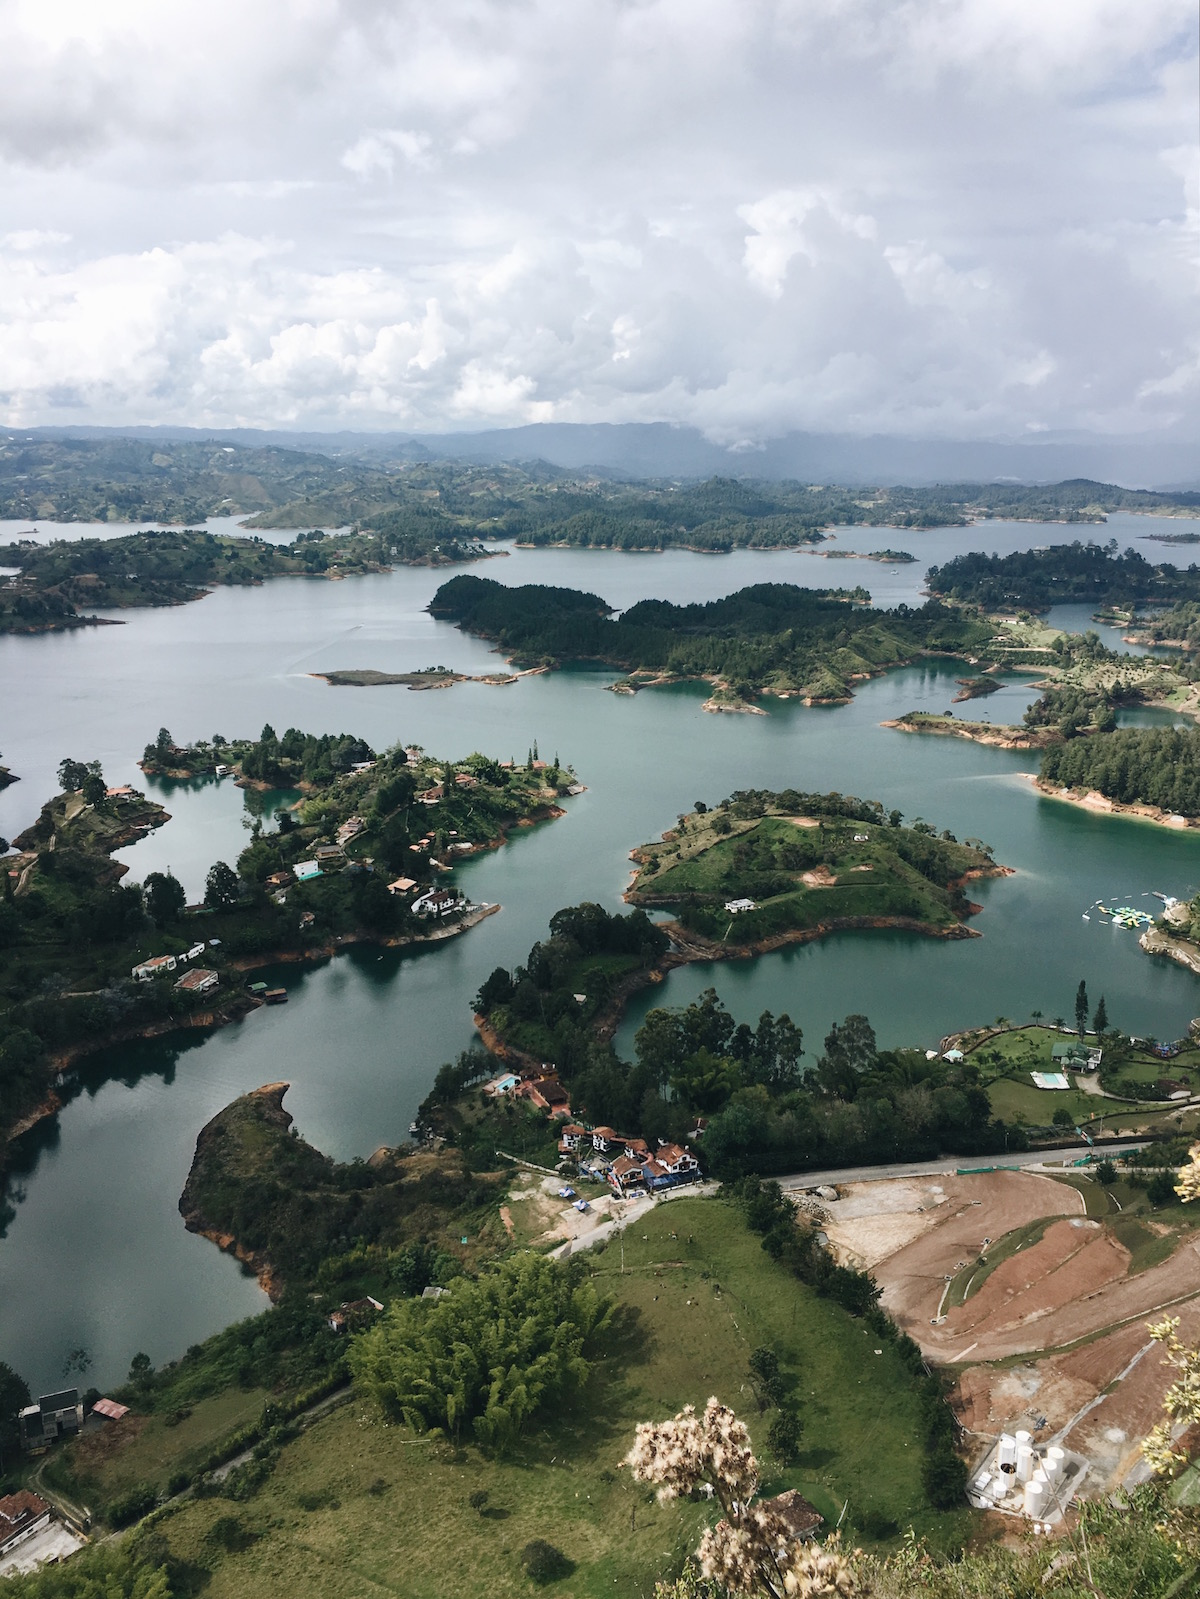 Climb the 700 stairs of Piedra del Peñol in Guatapé and be rewarded with this stunning view.